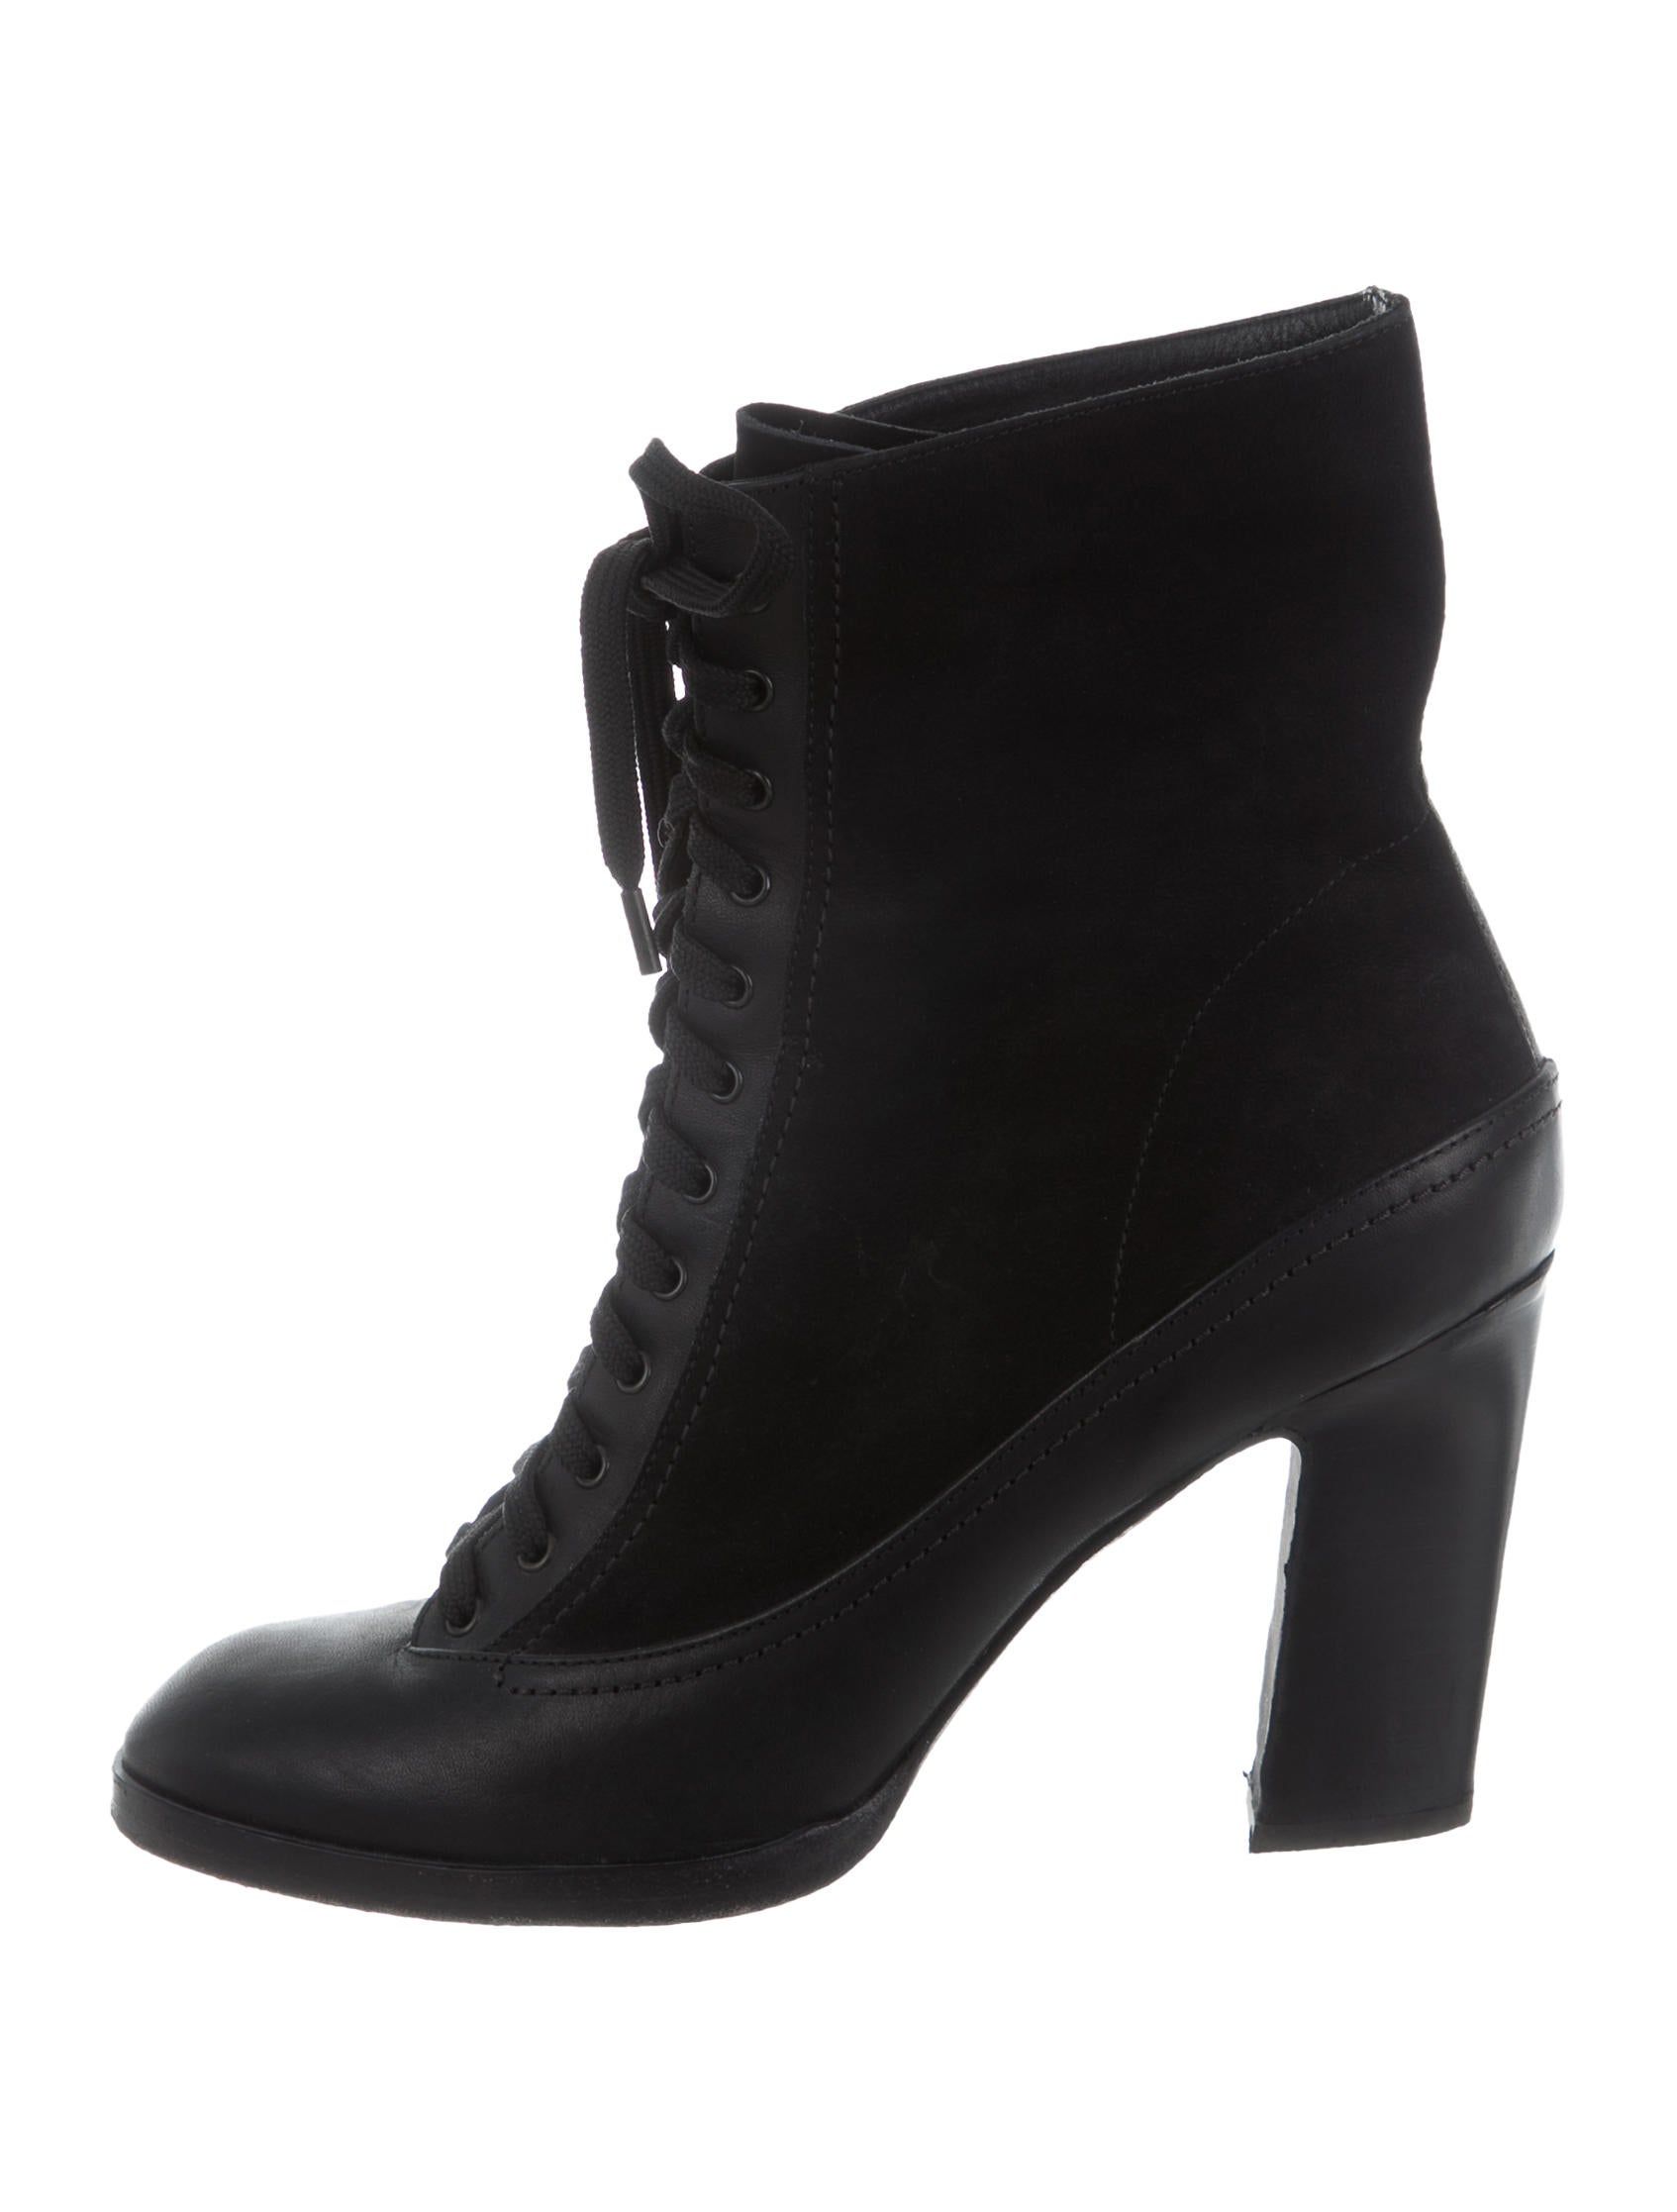 rag bone suede lace up ankle boots shoes wragb66764